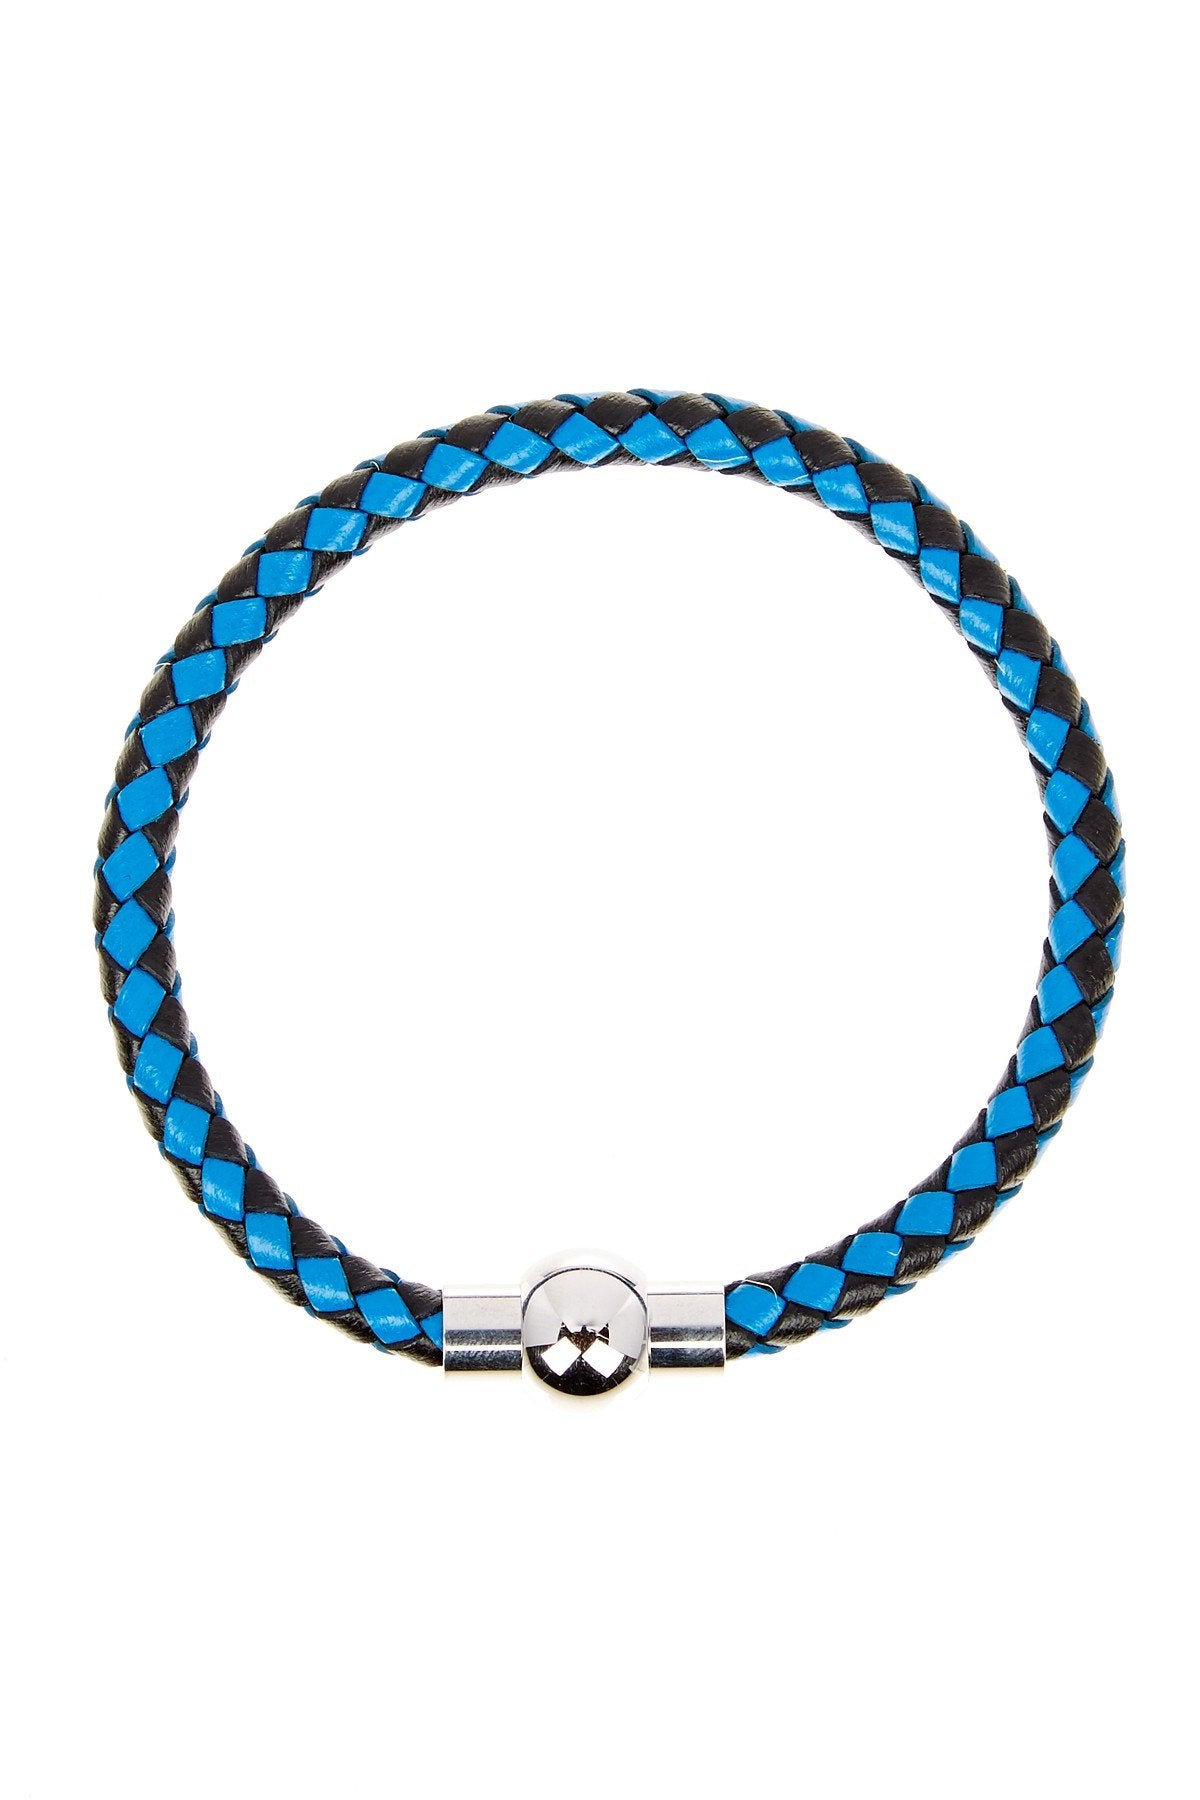 Blue & Black Woven Leather Bracelet in Silver